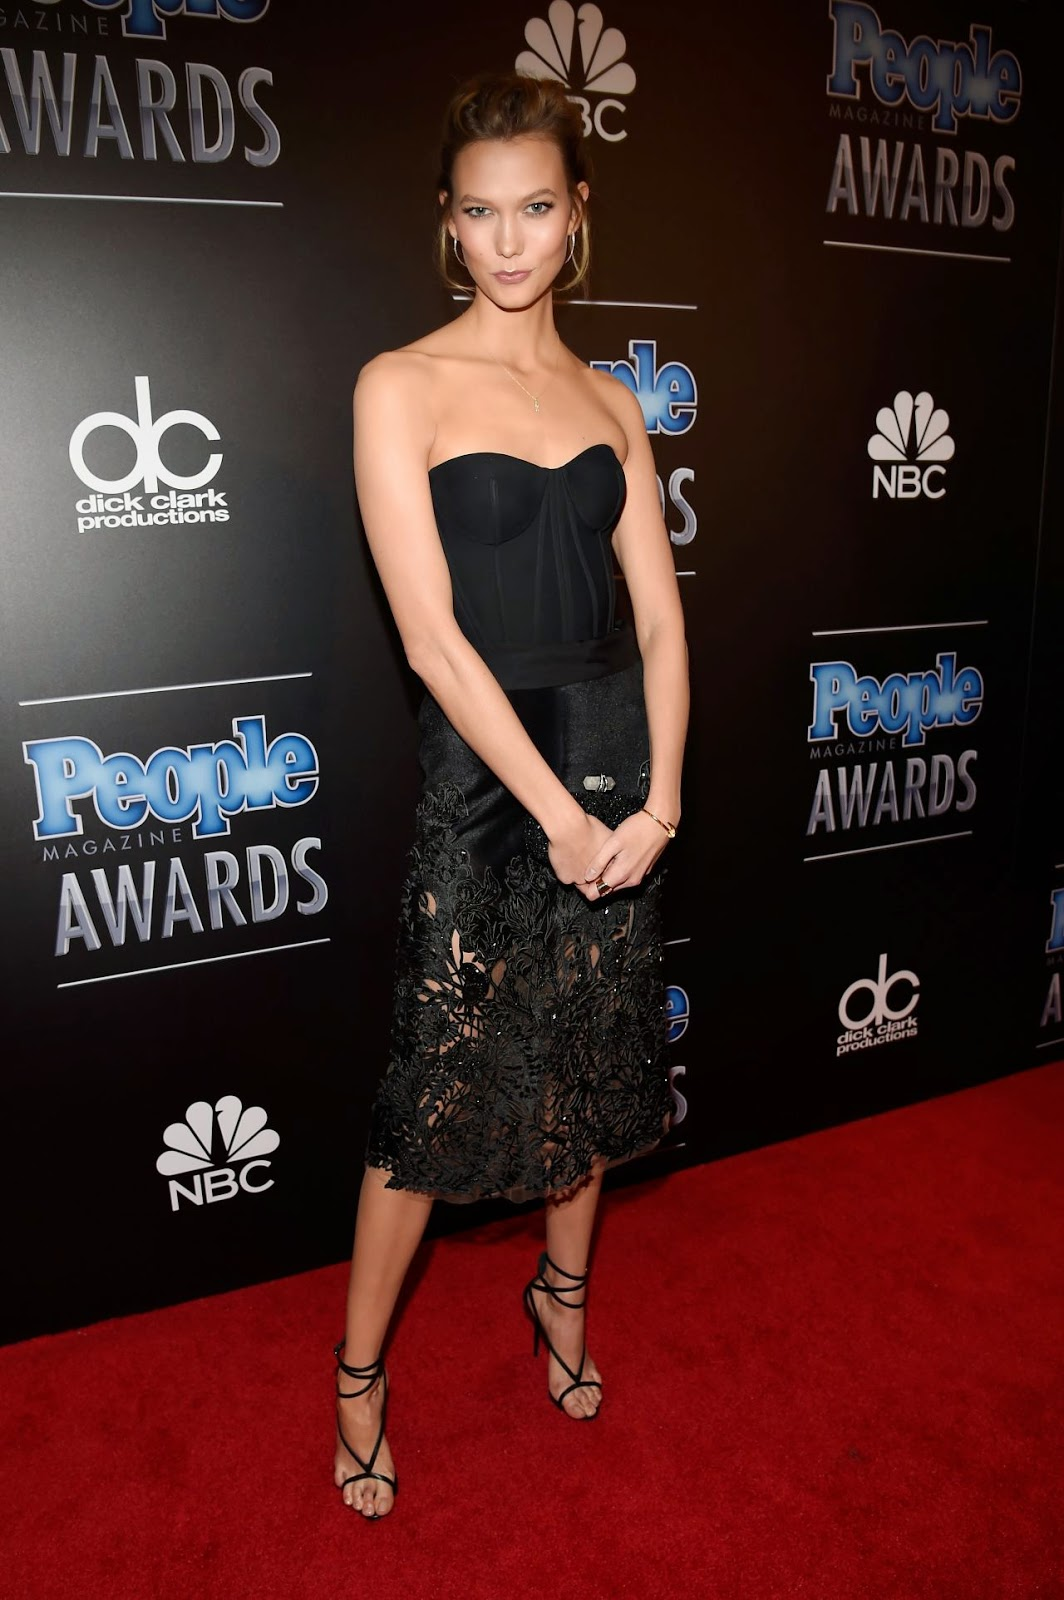 Karlie Kloss in a strapless look at the 2014 People Magazine Awards